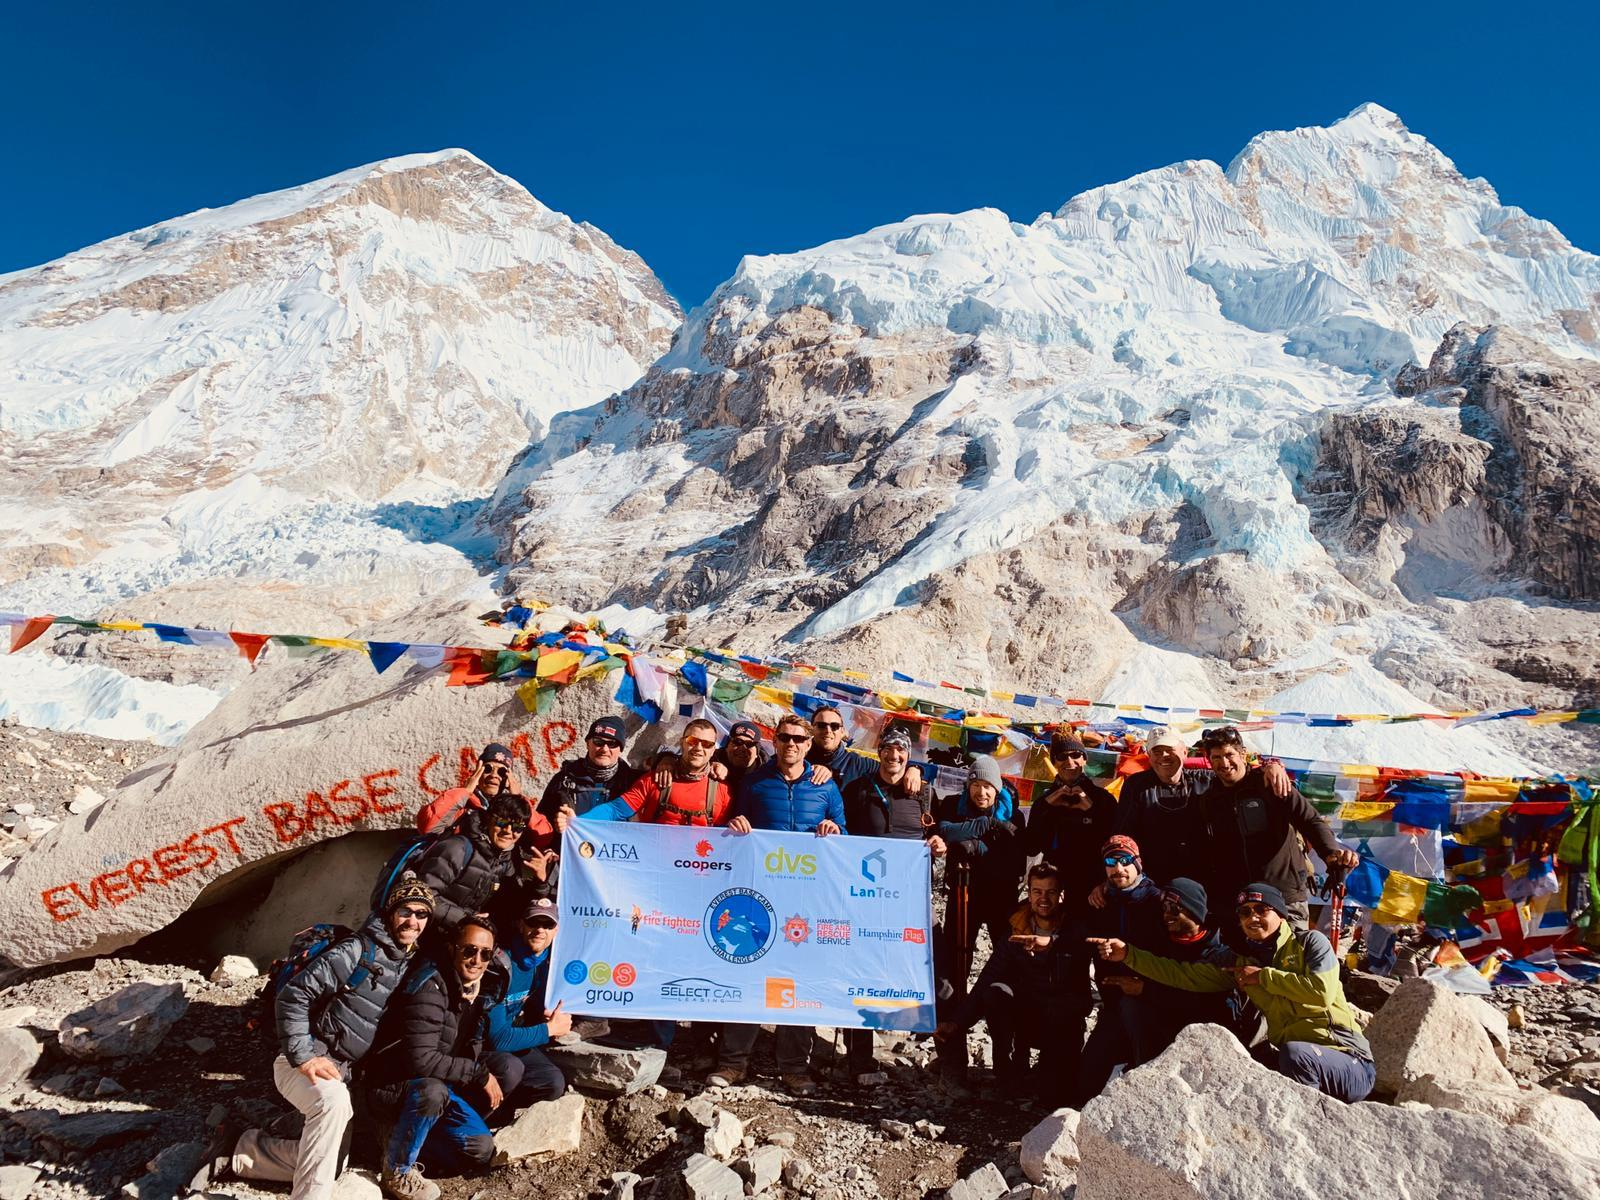 Clients at Mount Everest Base Camp